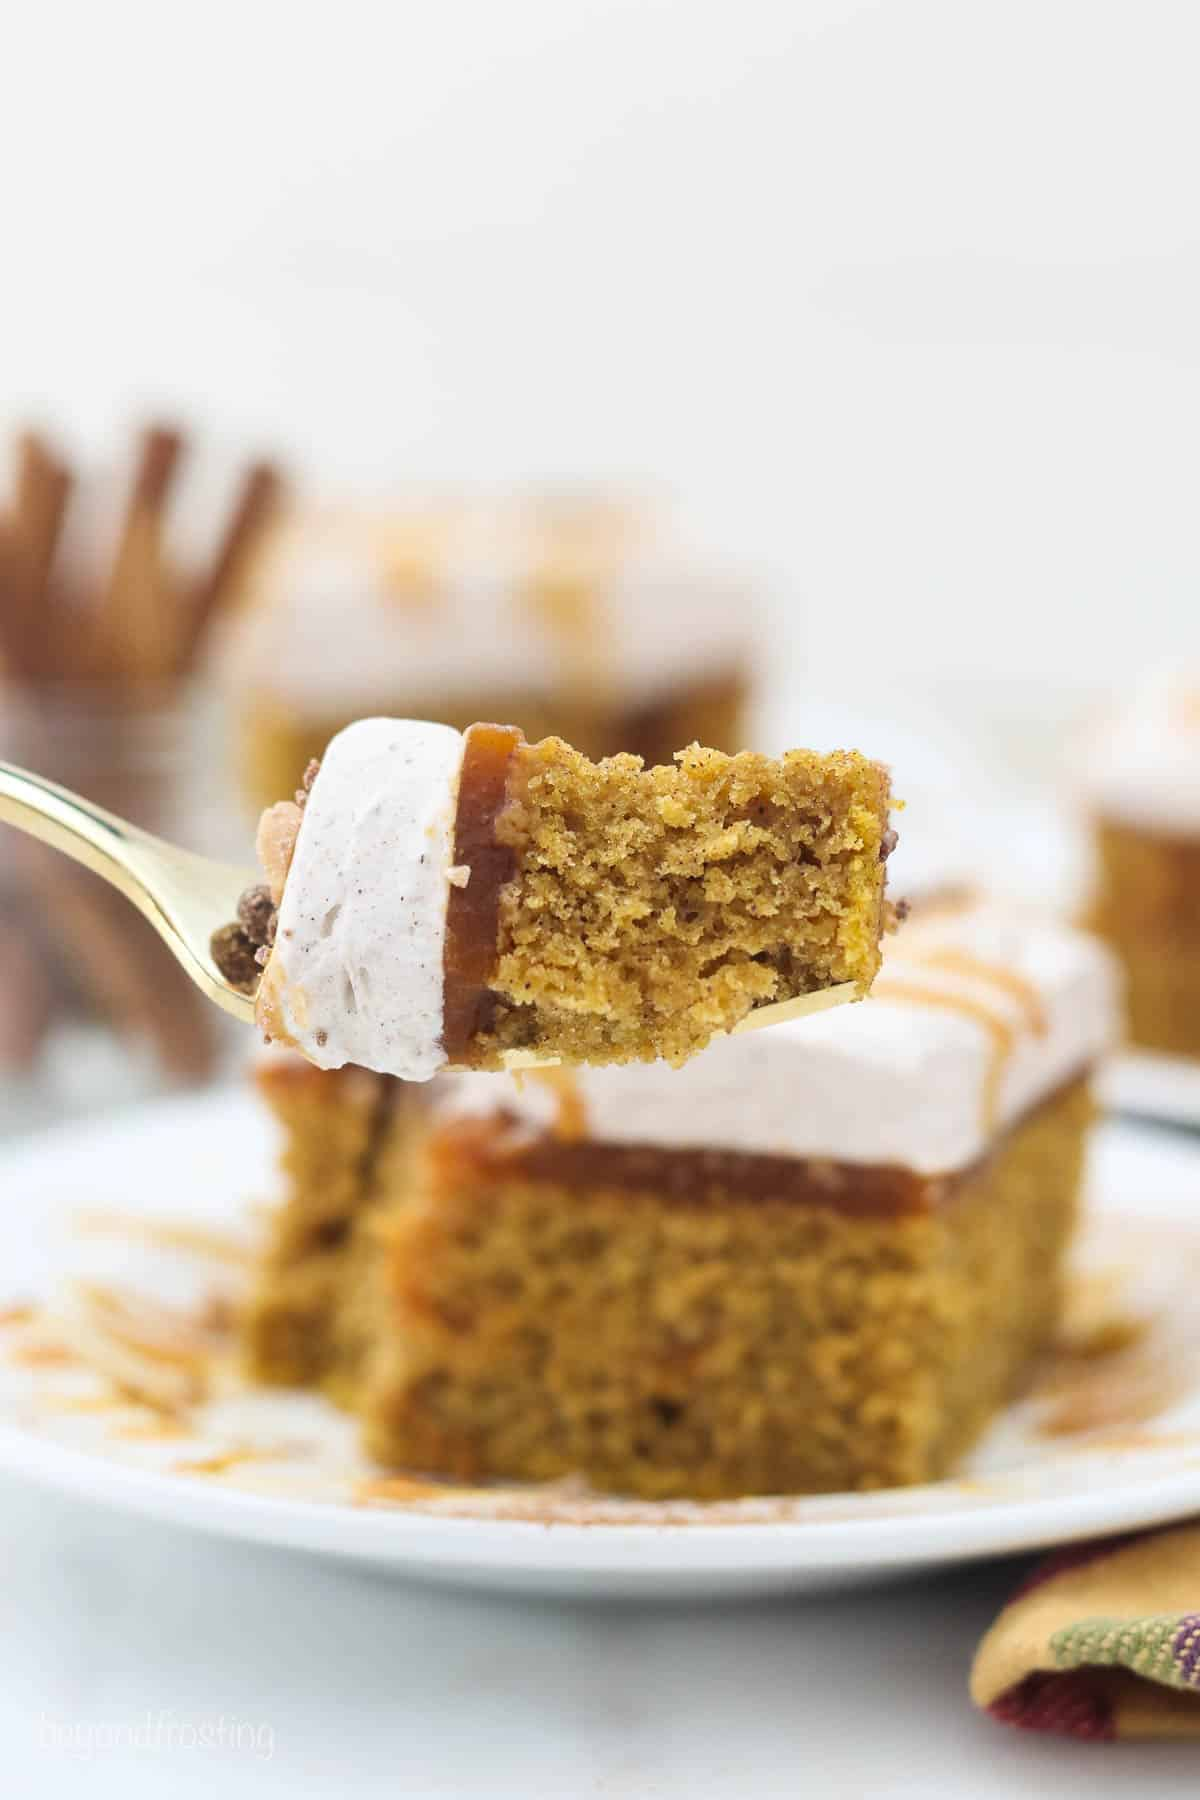 A gold fork with a big bite of cake on it showing the 3 layers of cake, pudding and whipped cream.